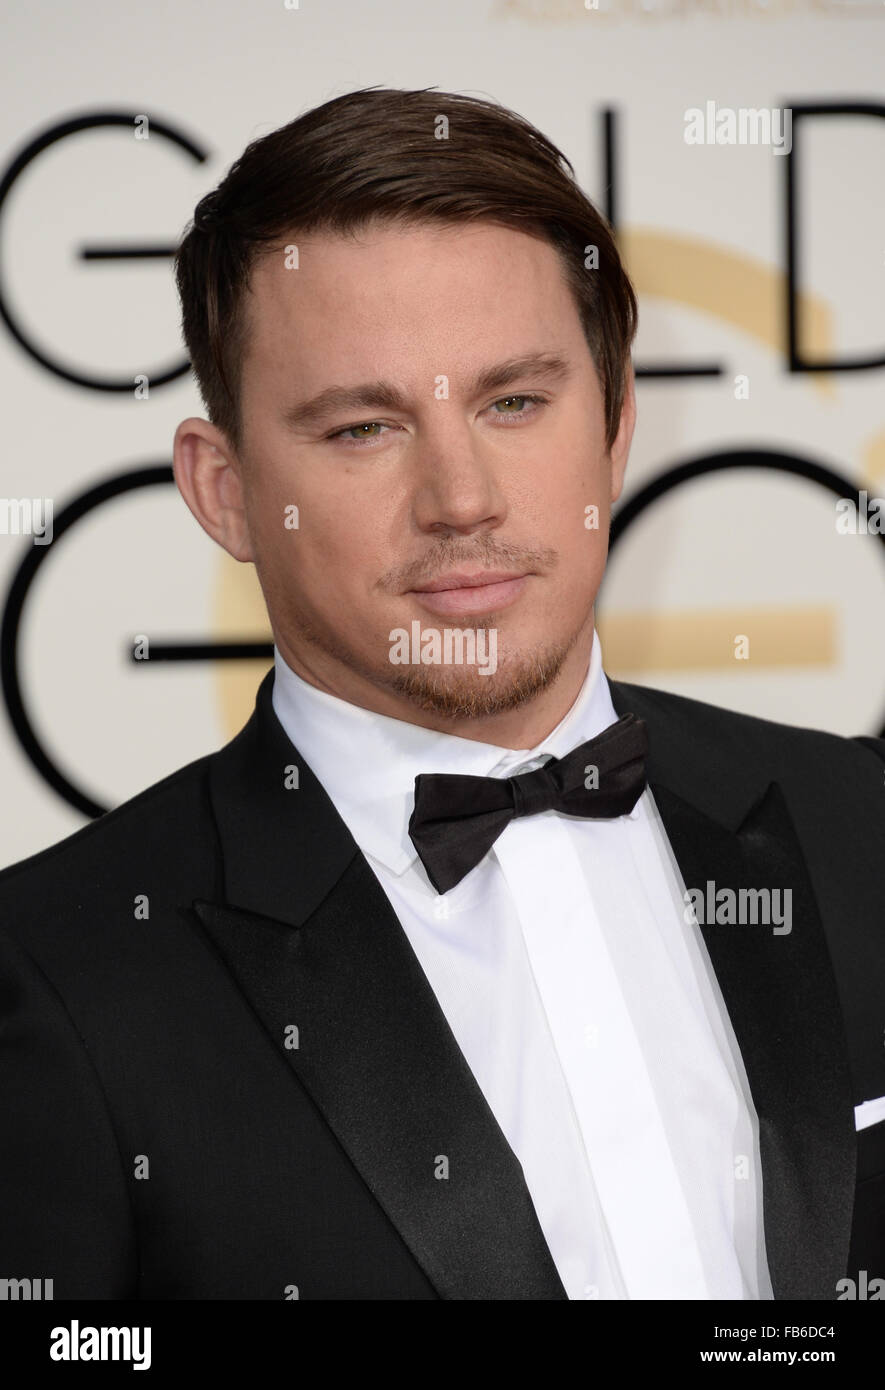 Los Angeles, Kalifornien, USA. 10. Januar 2016. Channing Tatum kommt bei den Golden Globes, Los Angeles, CA-Credit: Stockbild